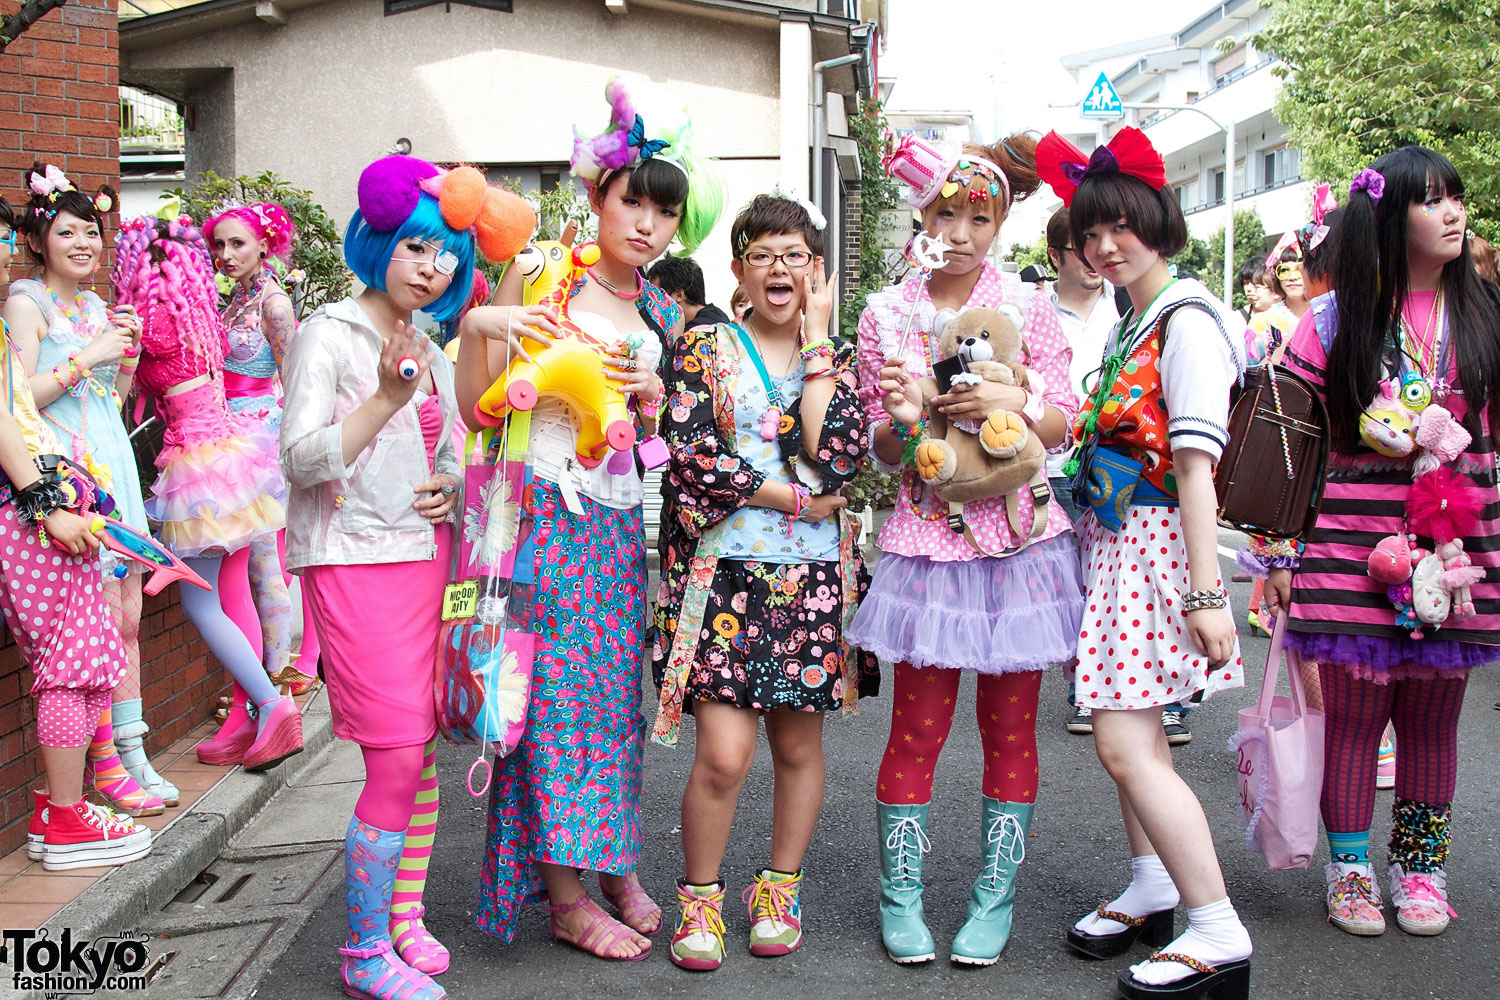 harajuku girls, japan italy bridge, japan culture, japan tradition, cultura giapponese, tradizioni giapponesi